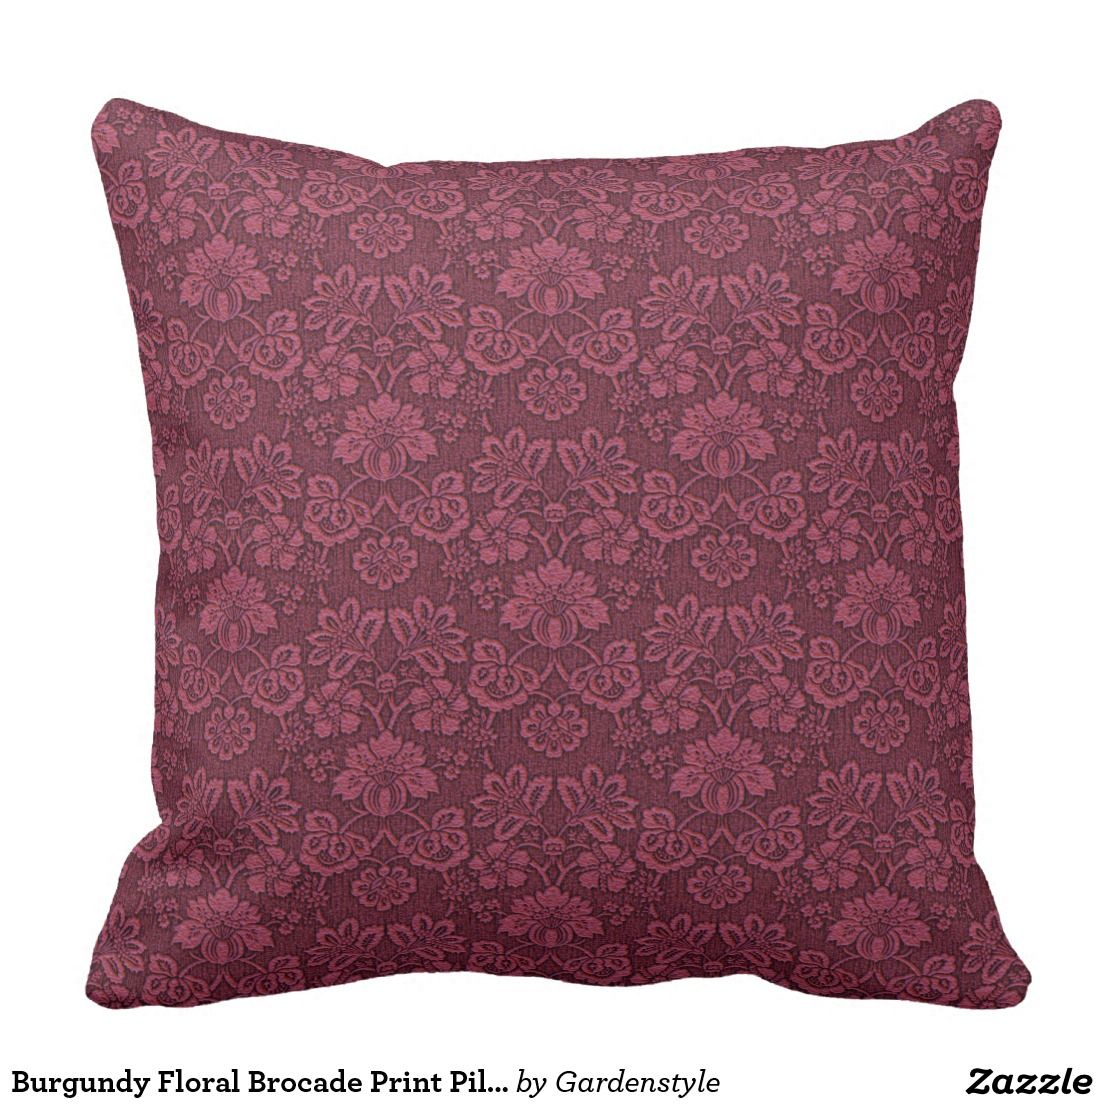 sku pillowsanddecor burgundy pillows pillow collections throw red